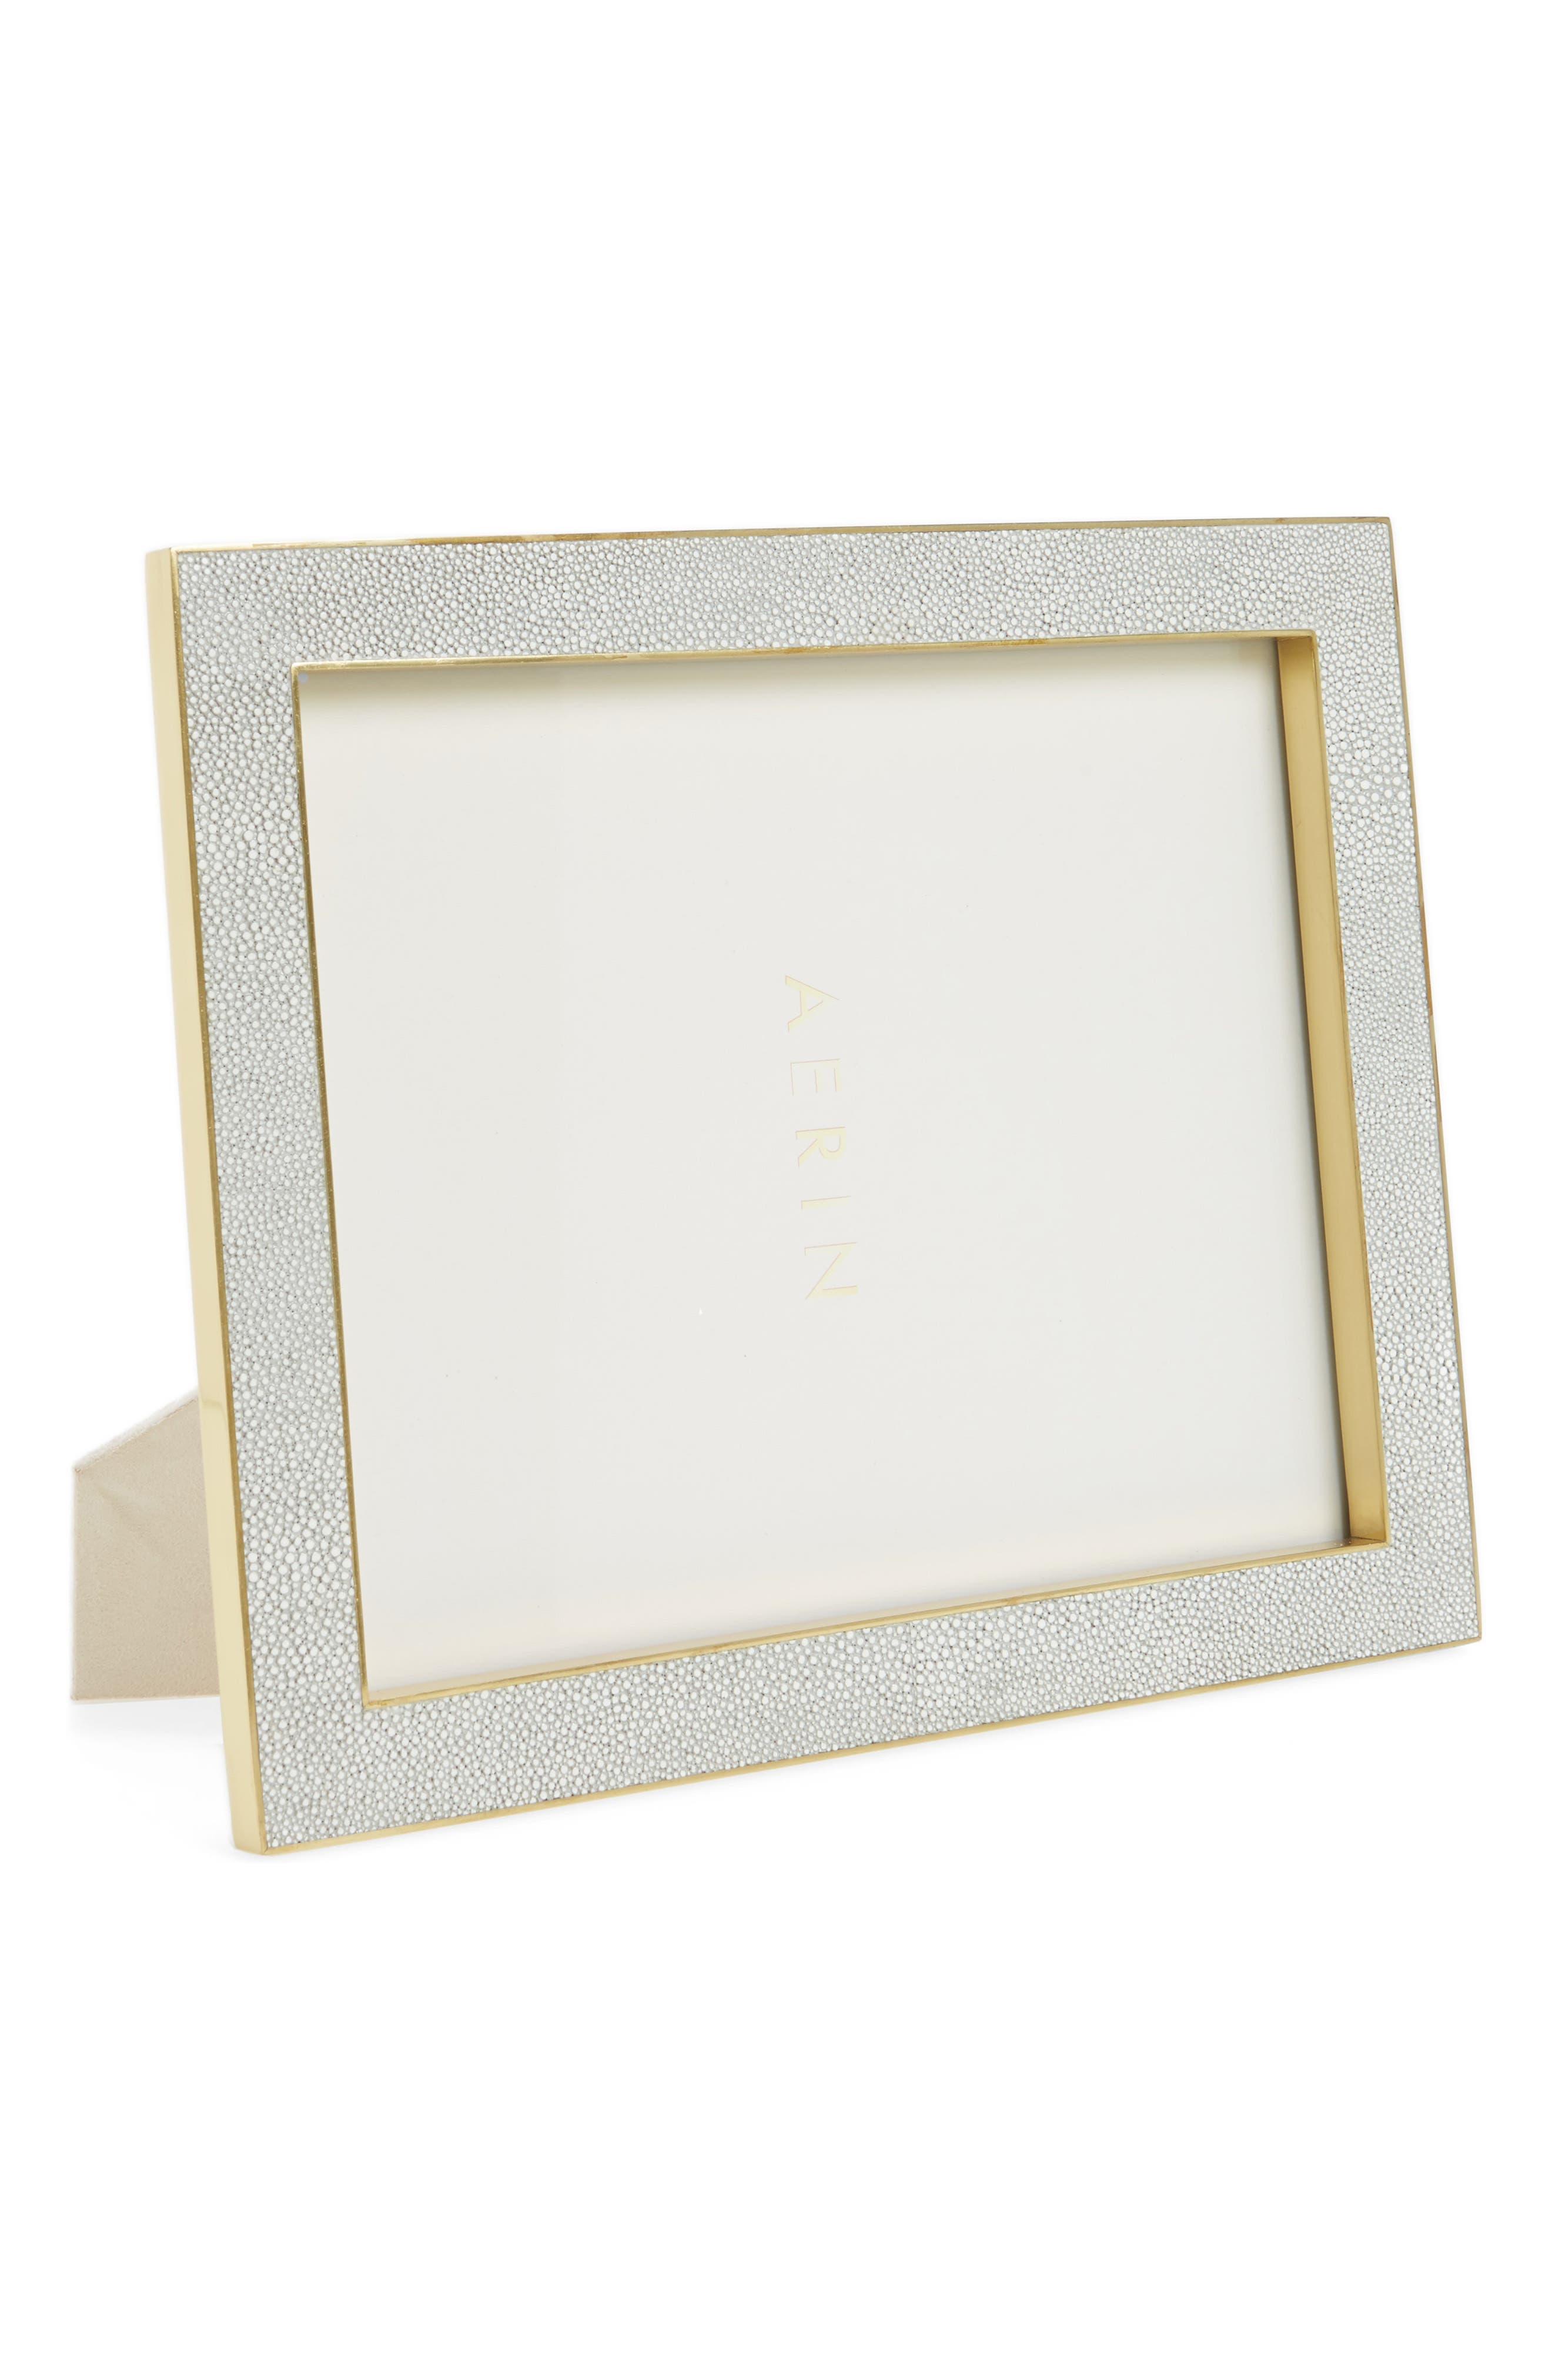 Classic Shagreen Picture Frame,                             Main thumbnail 1, color,                             020